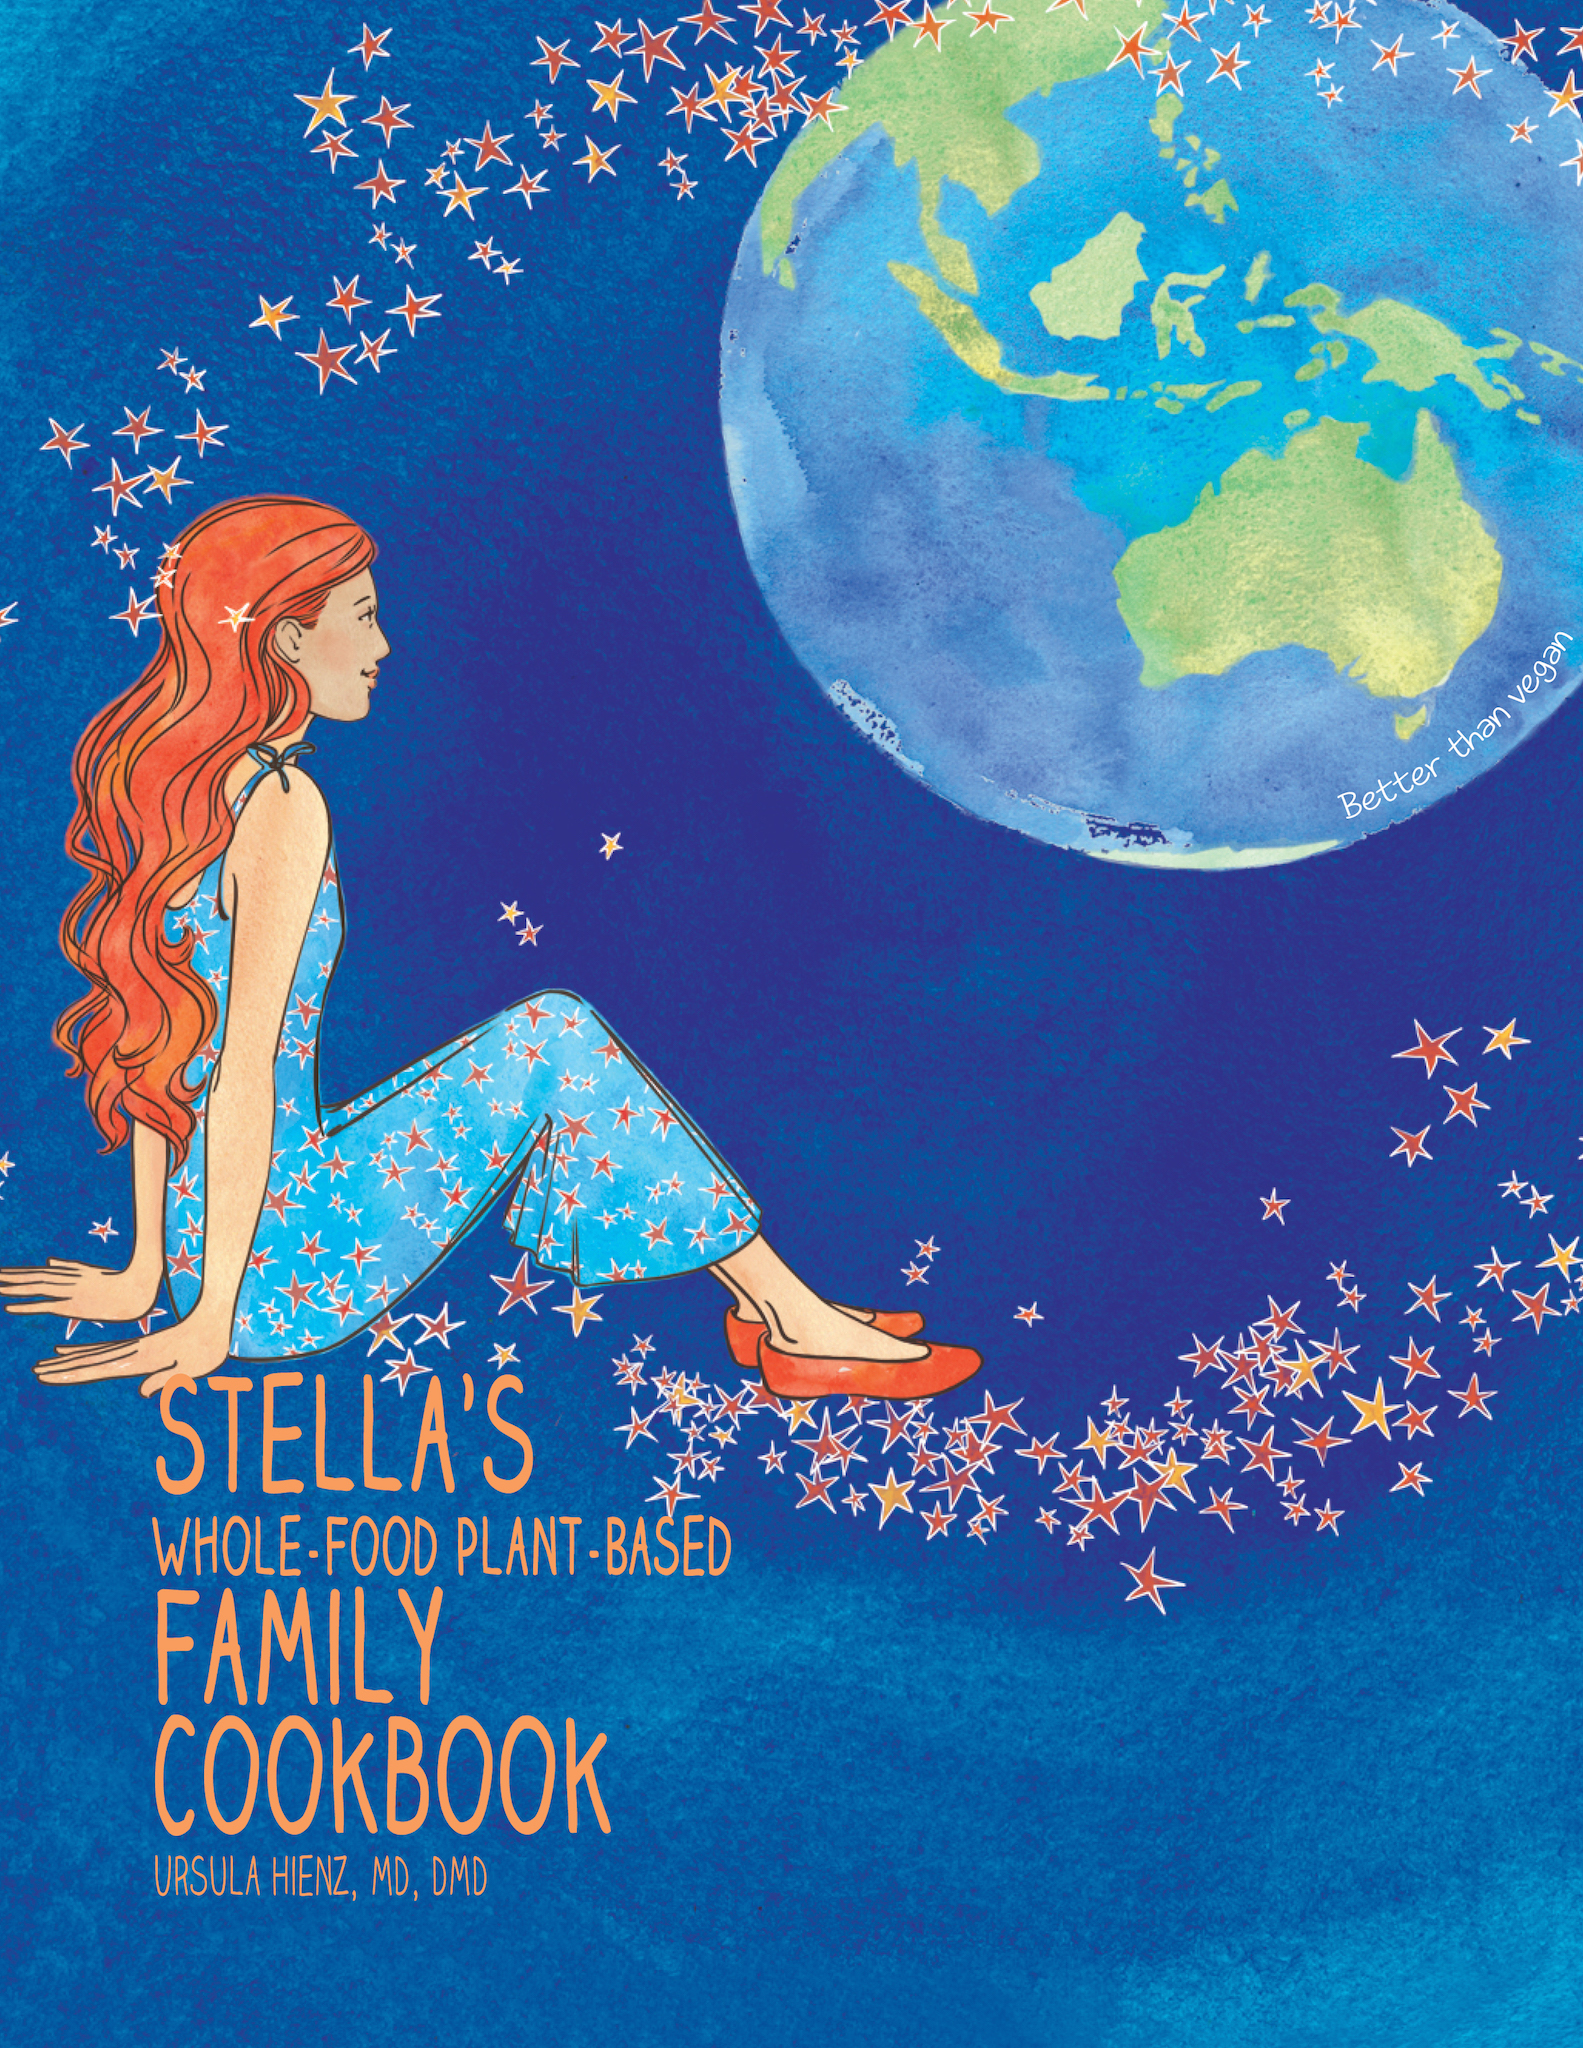 Stella's Whole-Food Plant-Based Family Cook Book - $14.95